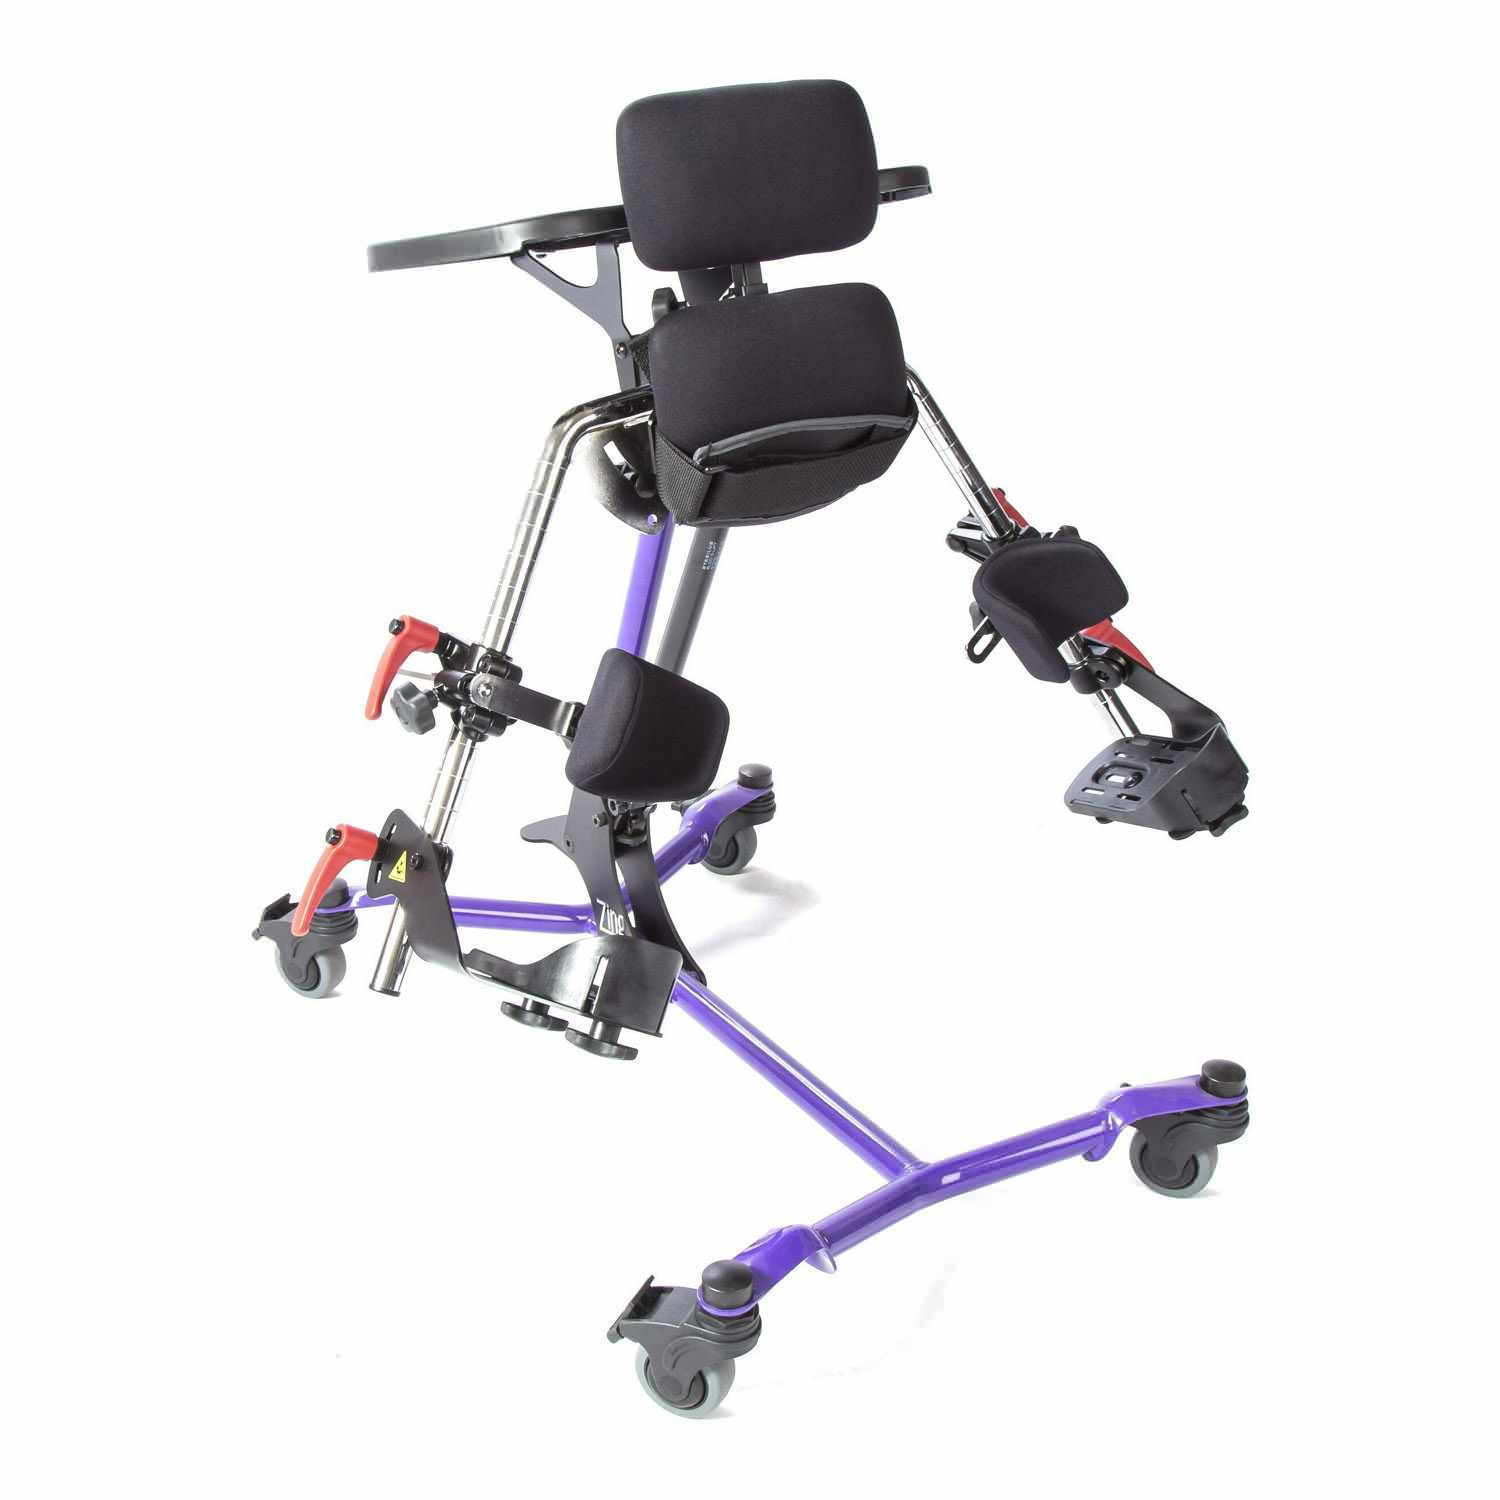 EasyStand Zing prone stander, size 1 - Package